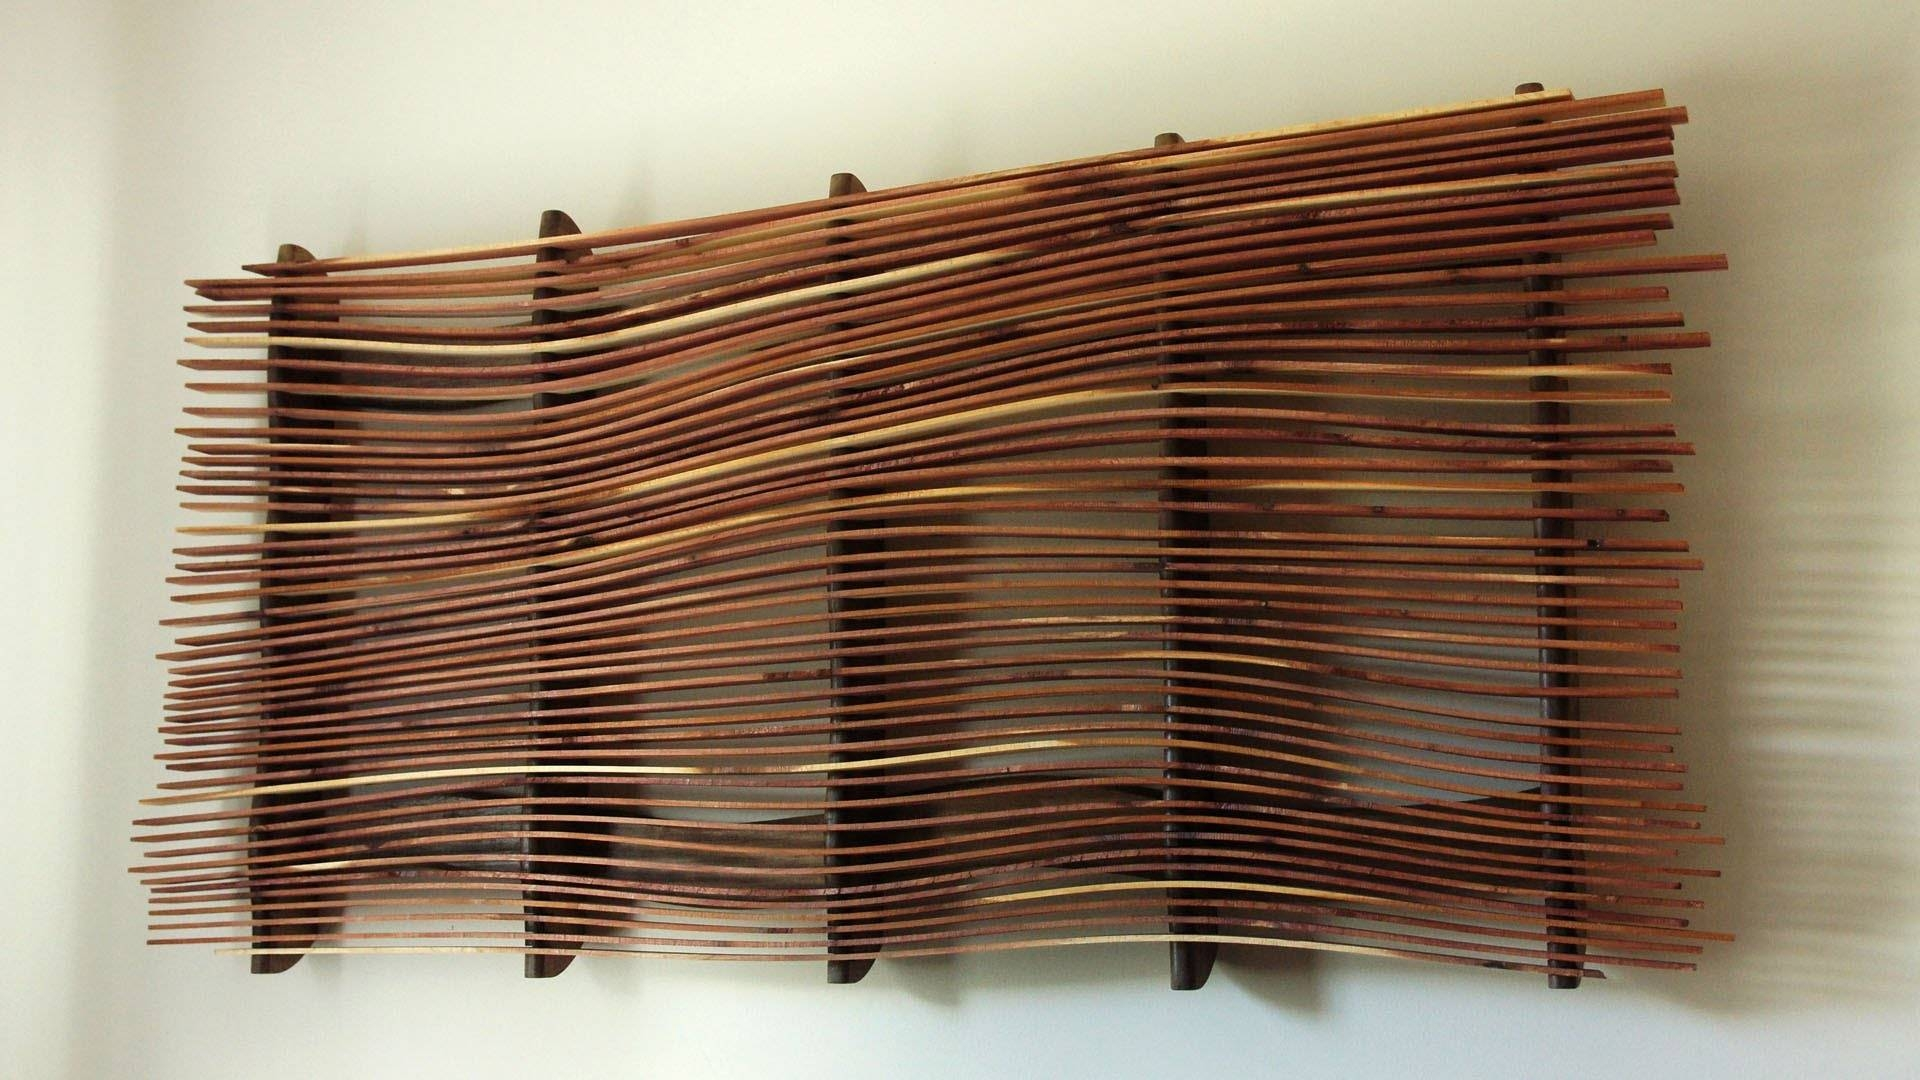 Wood Panel Wall Art Wave Patterns Best House Design : Wood Panel Intended For Most Popular Wood Panel Wall Art (View 18 of 20)